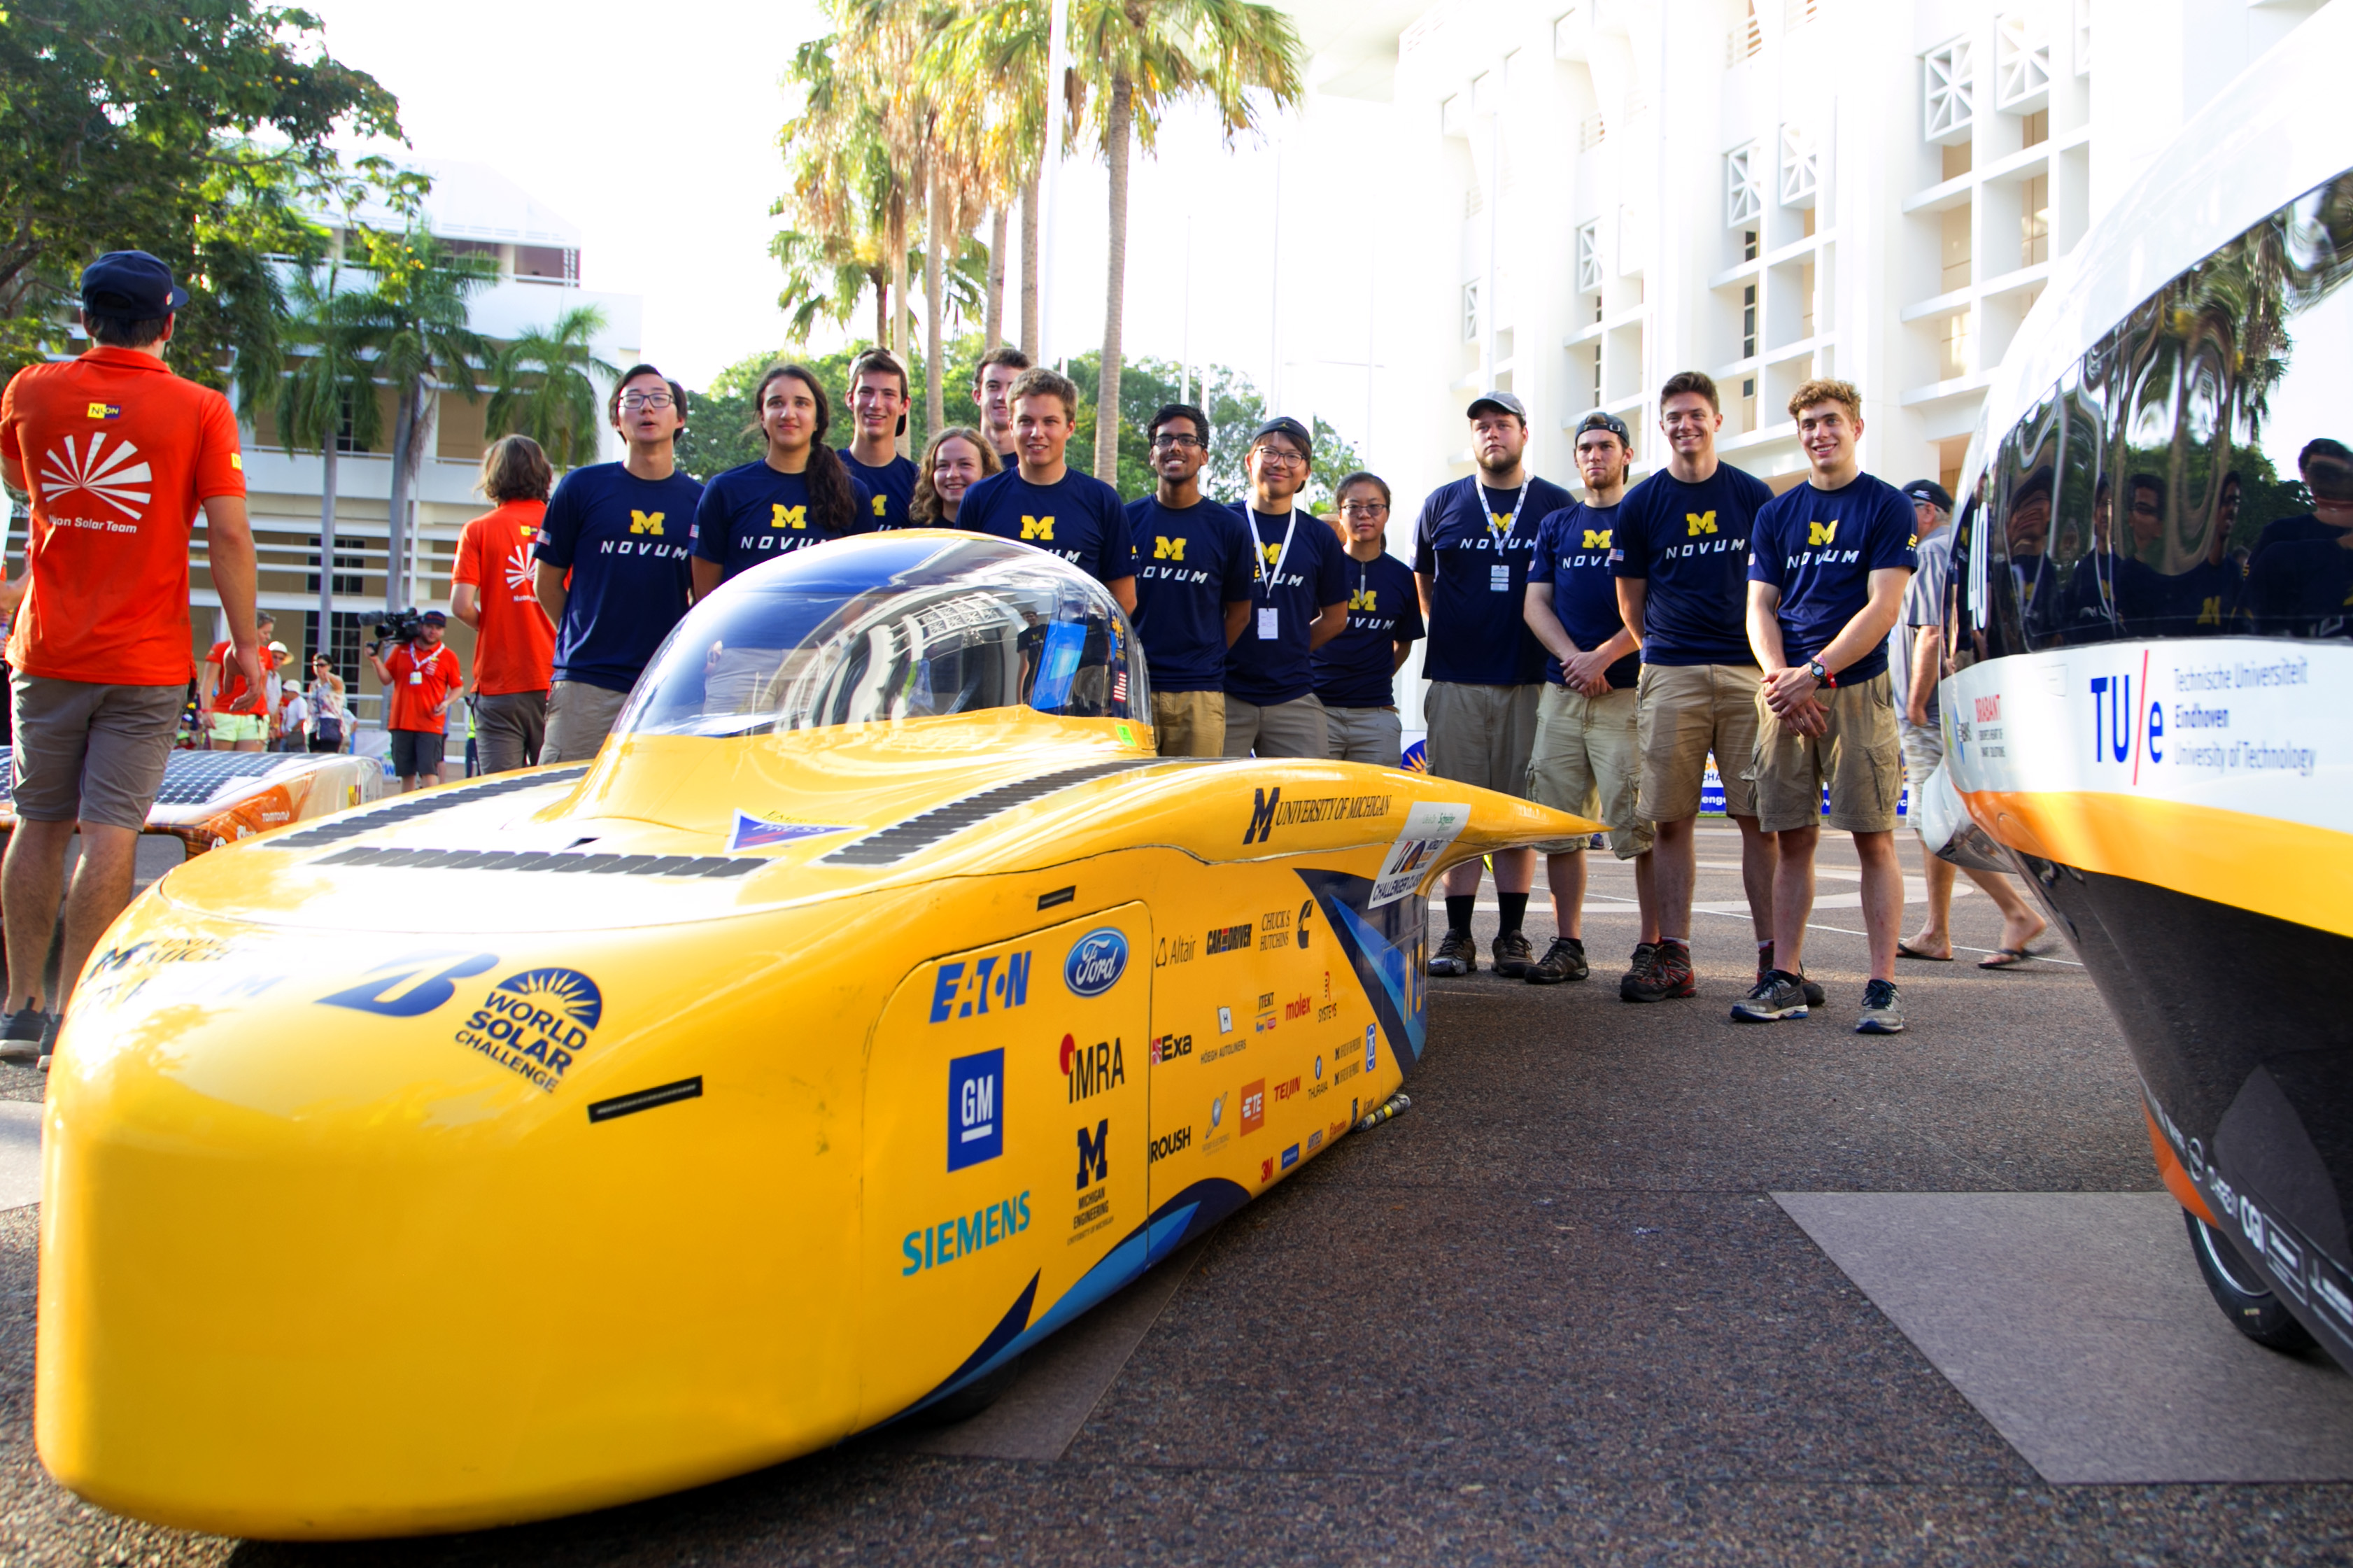 Michigan Solar Car Team